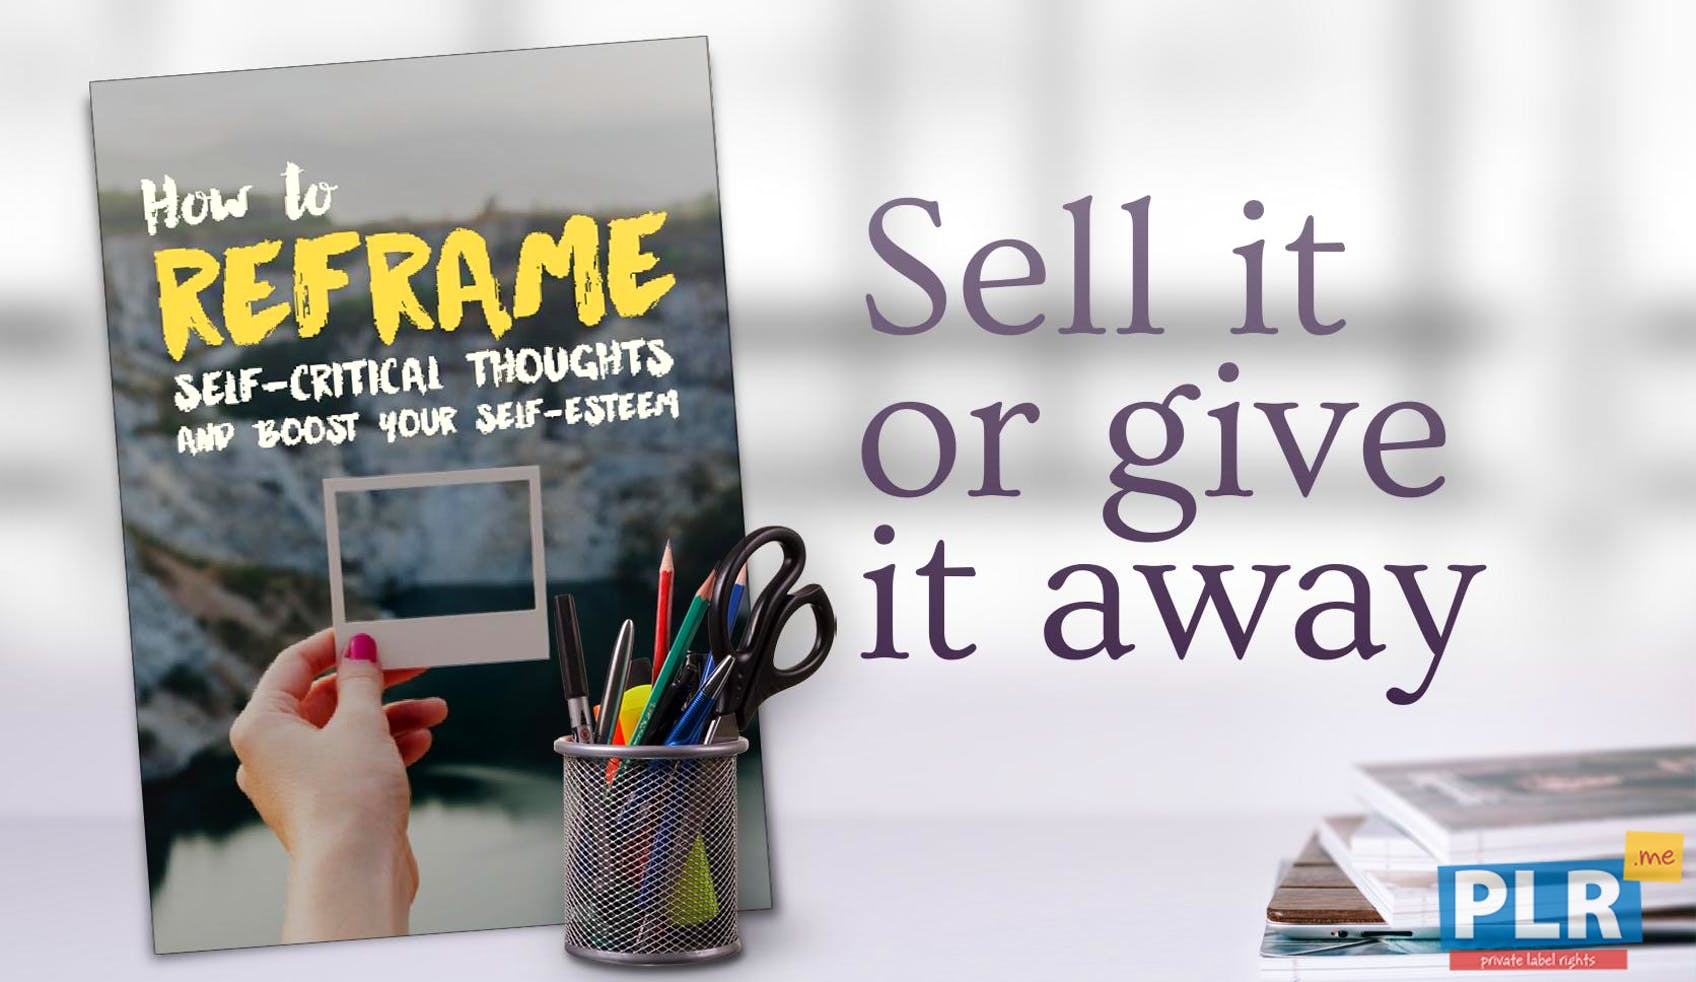 How To Reframe Self Critical Thoughts And Boost Your Self Esteem